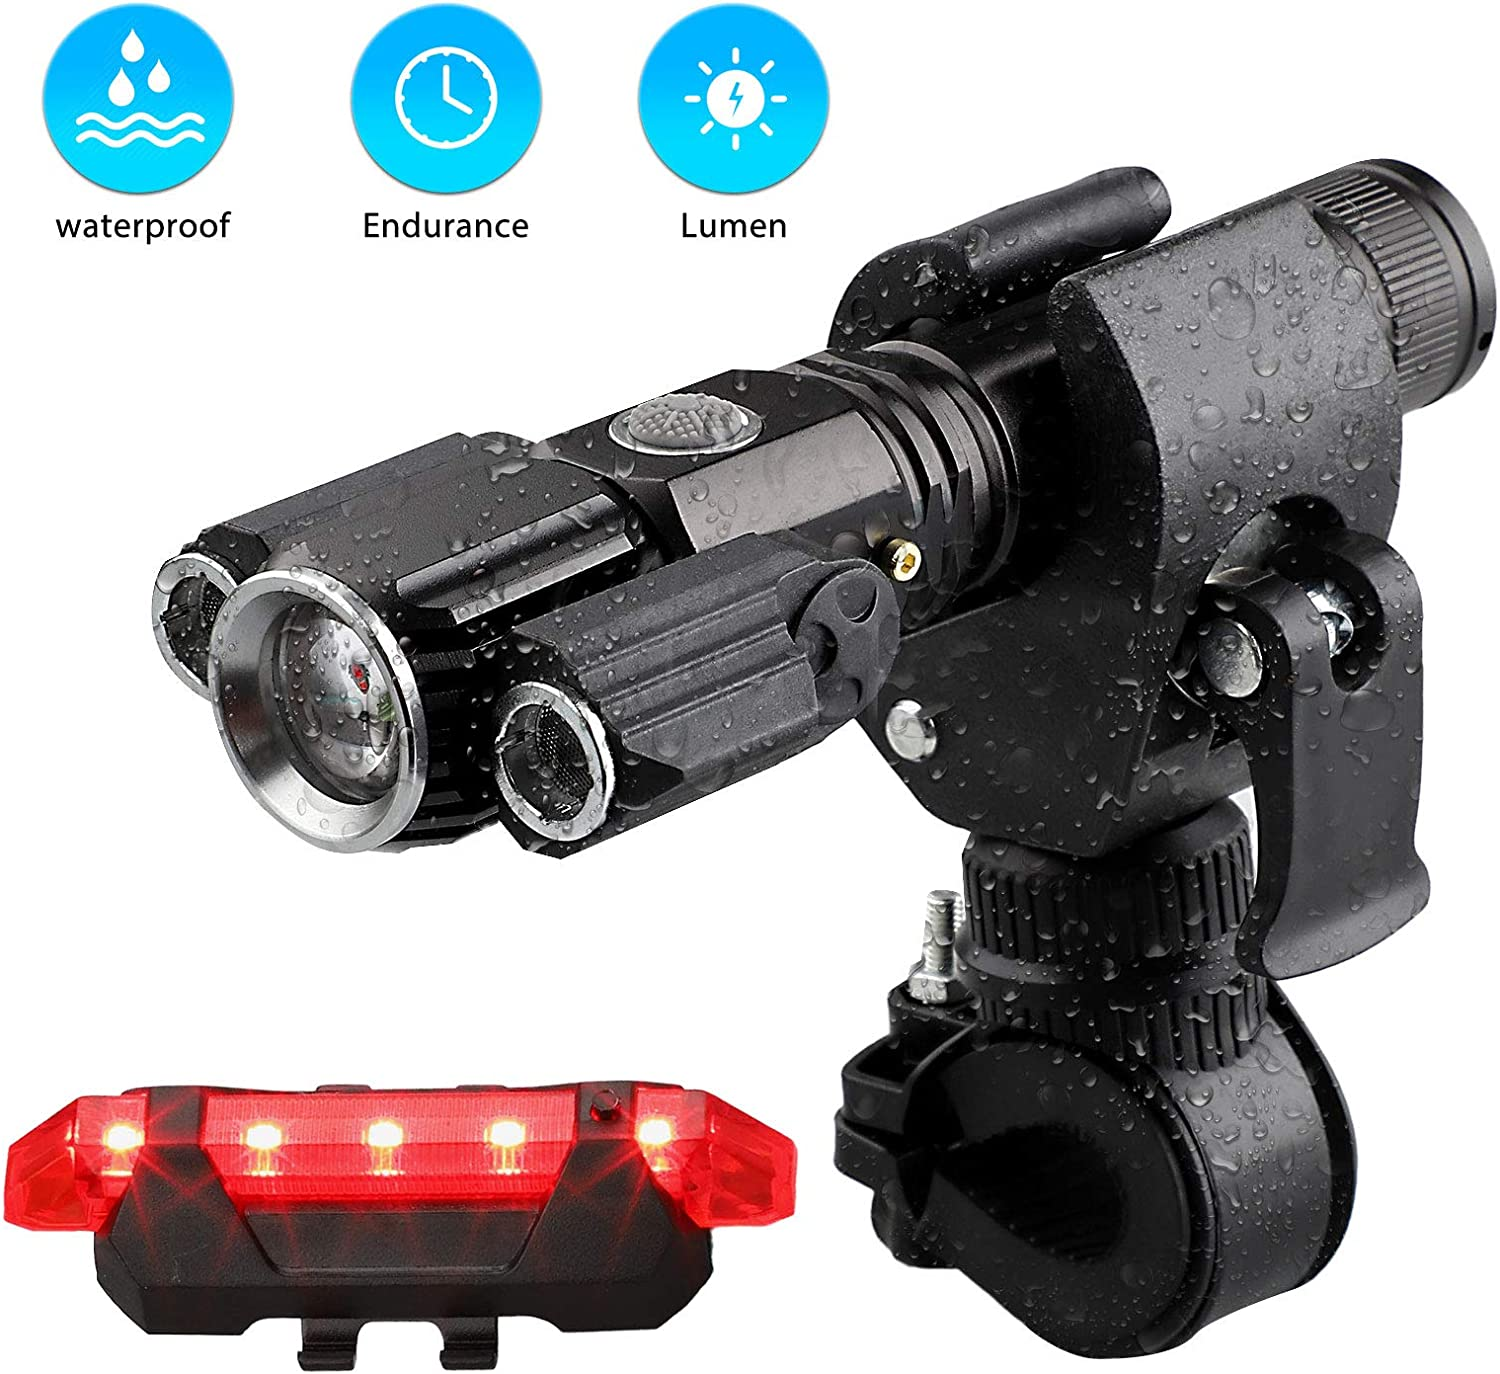 Linkstyle Bike Light Waterproof USB Rechargeable Bike Light Set,500 Lumens Super Bright Headlight Front Lights and Back Rear LED,4 Light Mode Fits All Bicycles, Mountain, Road